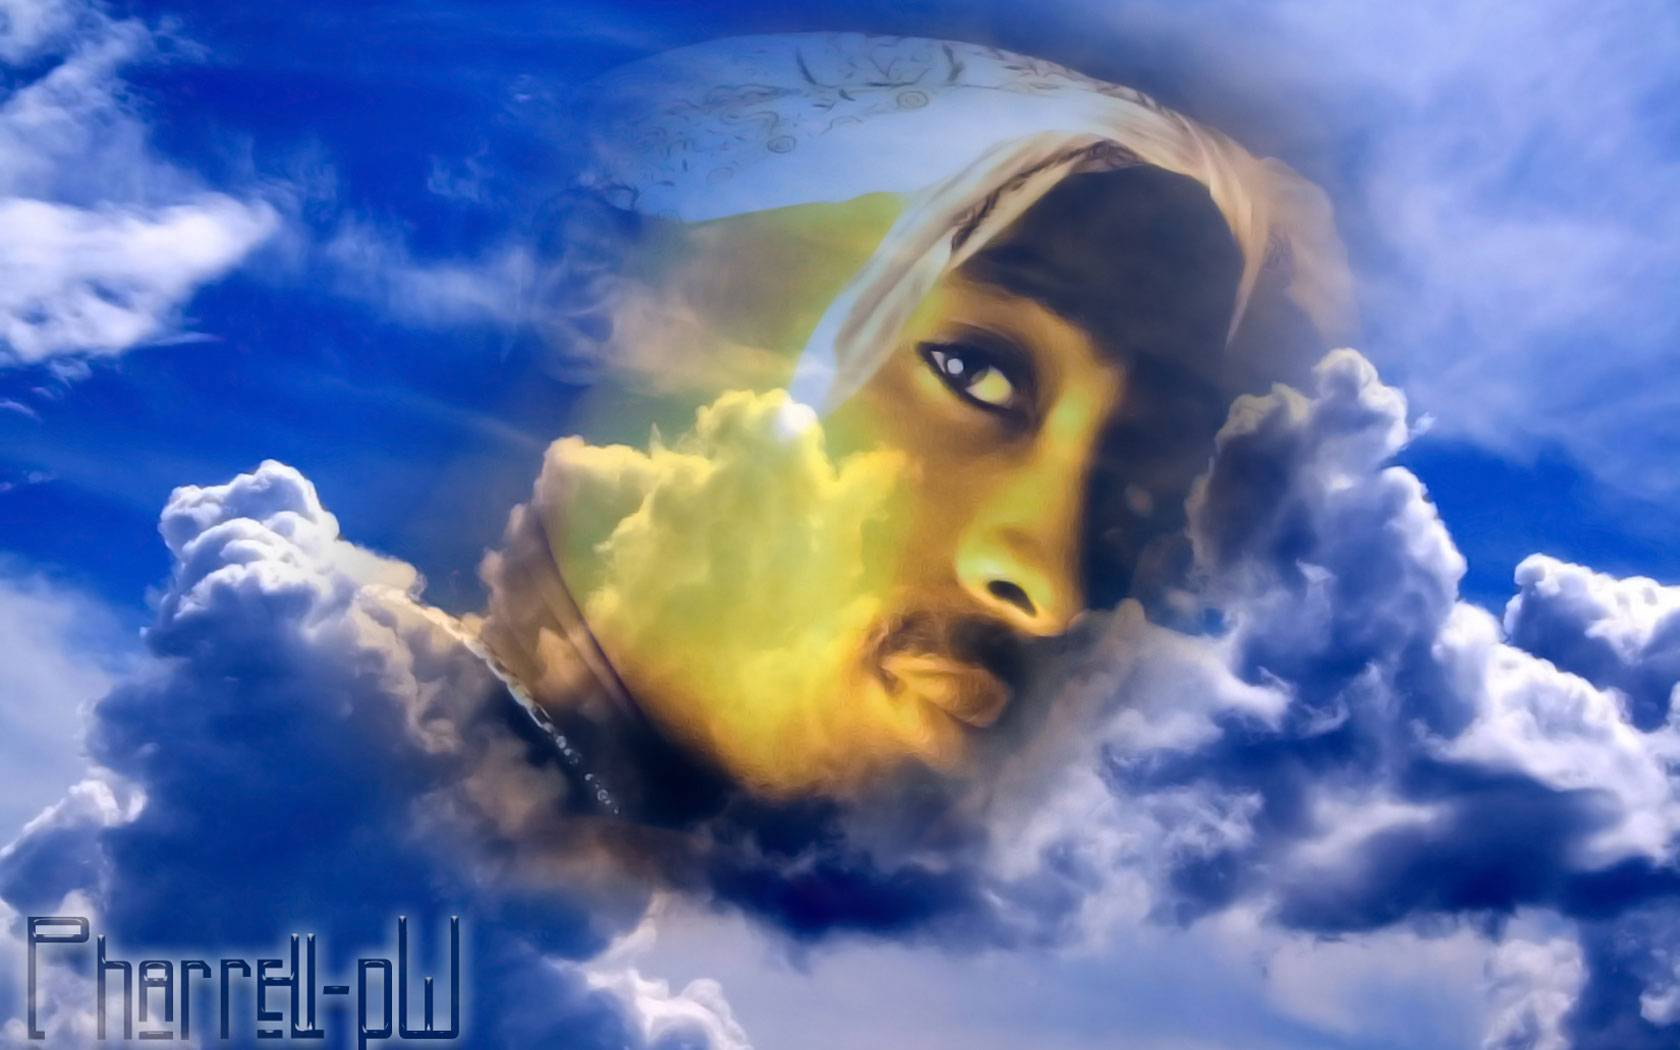 Free download 2Pac Shakur Life Goes On Wallpaper 2pac